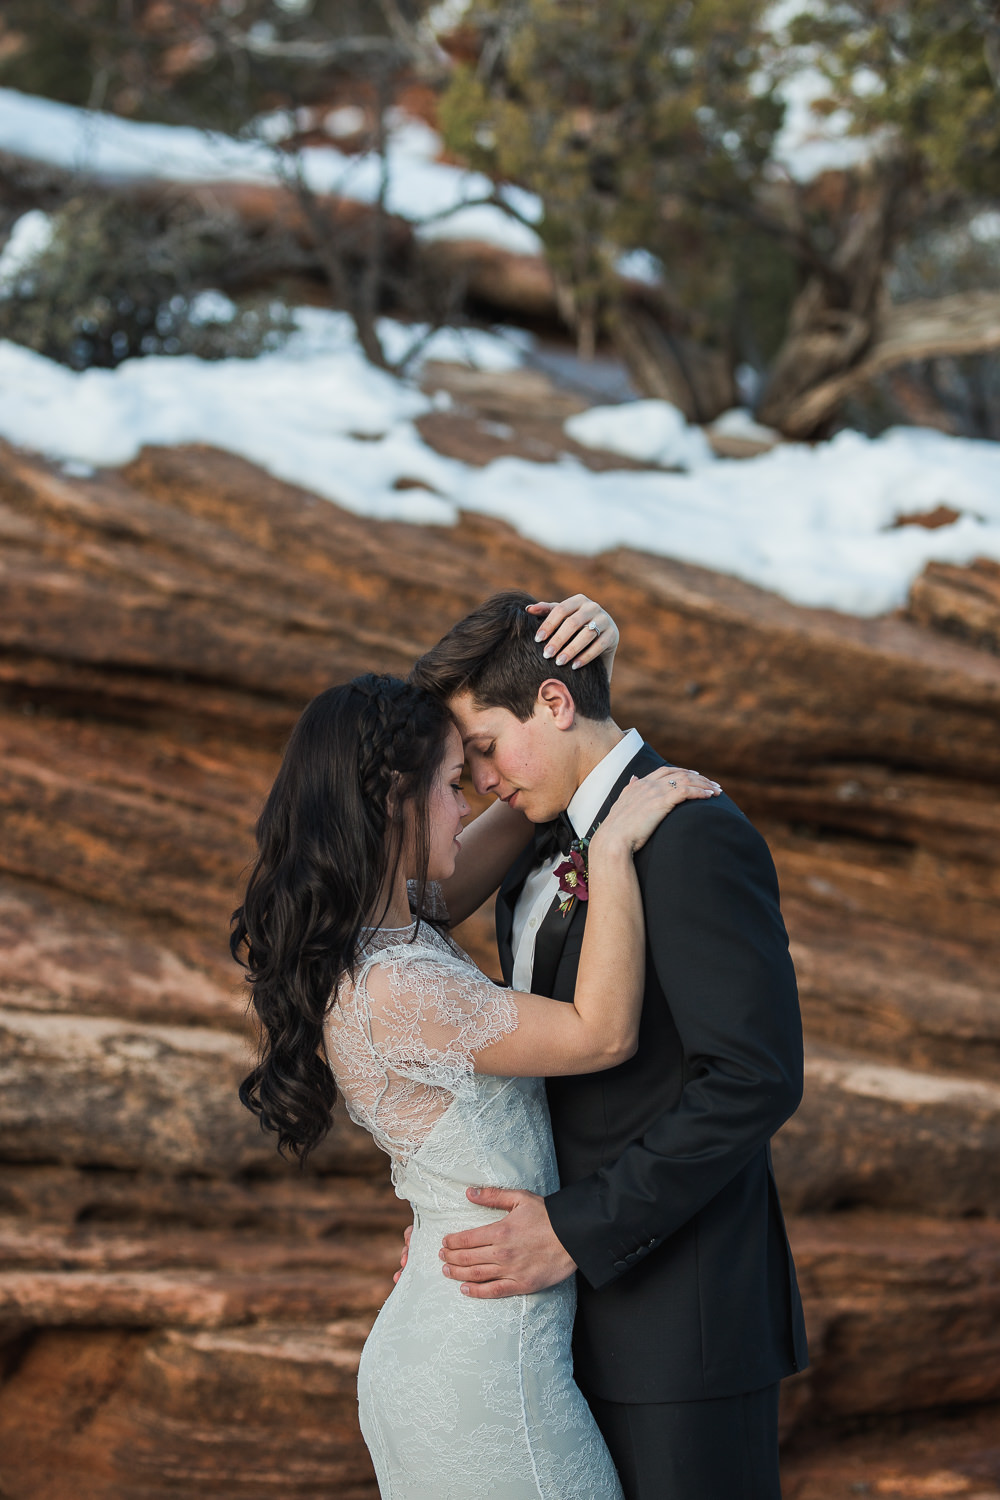 Adventure Wedding and elopement photographers Zion National Park Utah